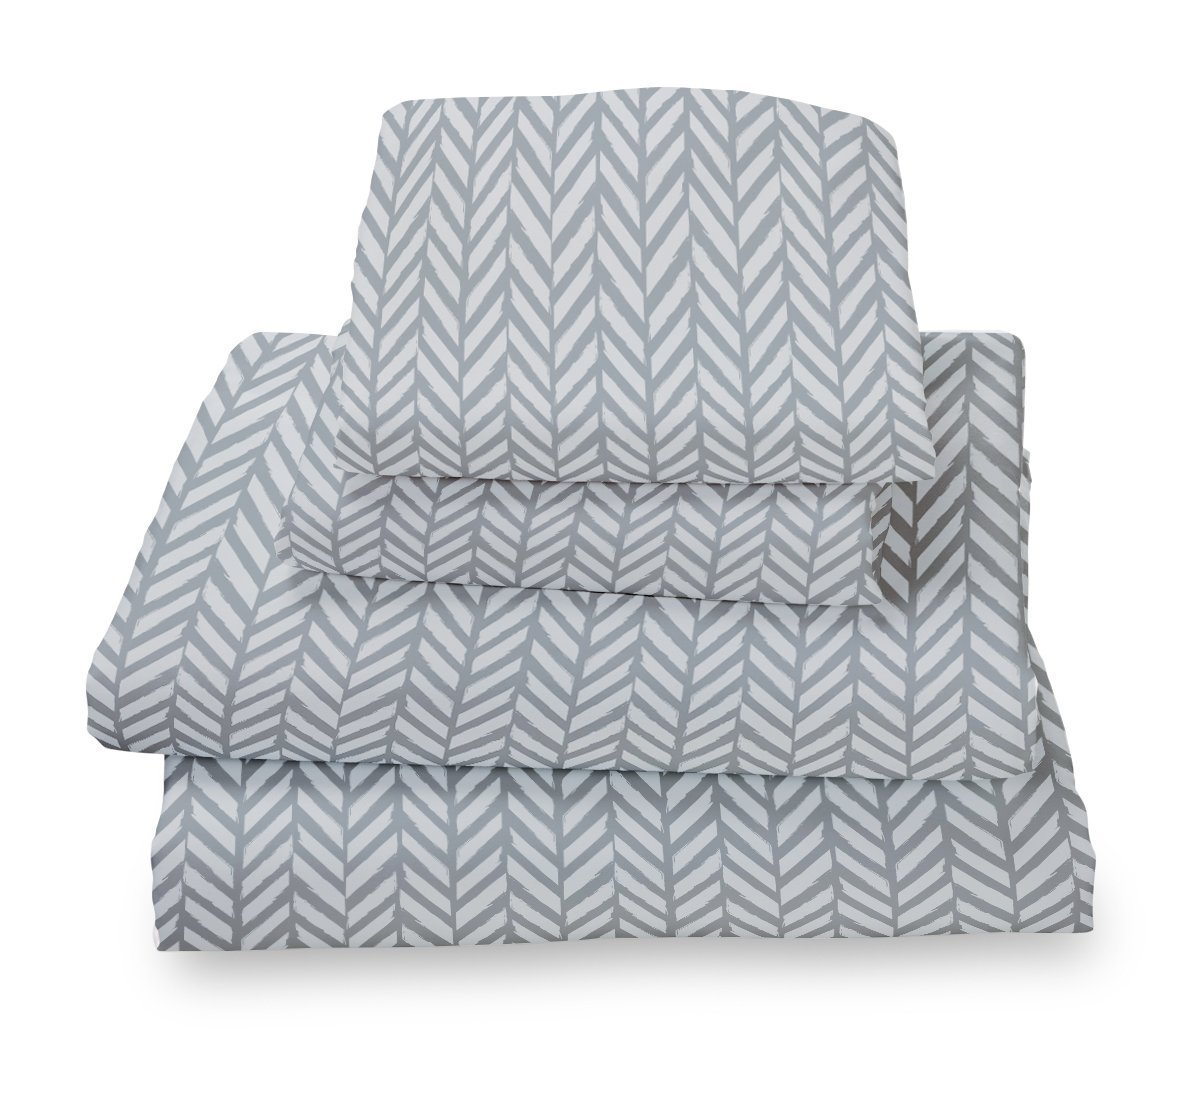 Where The Polka Dots Roam XL Twin Sheet Set Blue Gray Herringbone - Double Brushed Ultra Microfiber Luxury Bedding Set